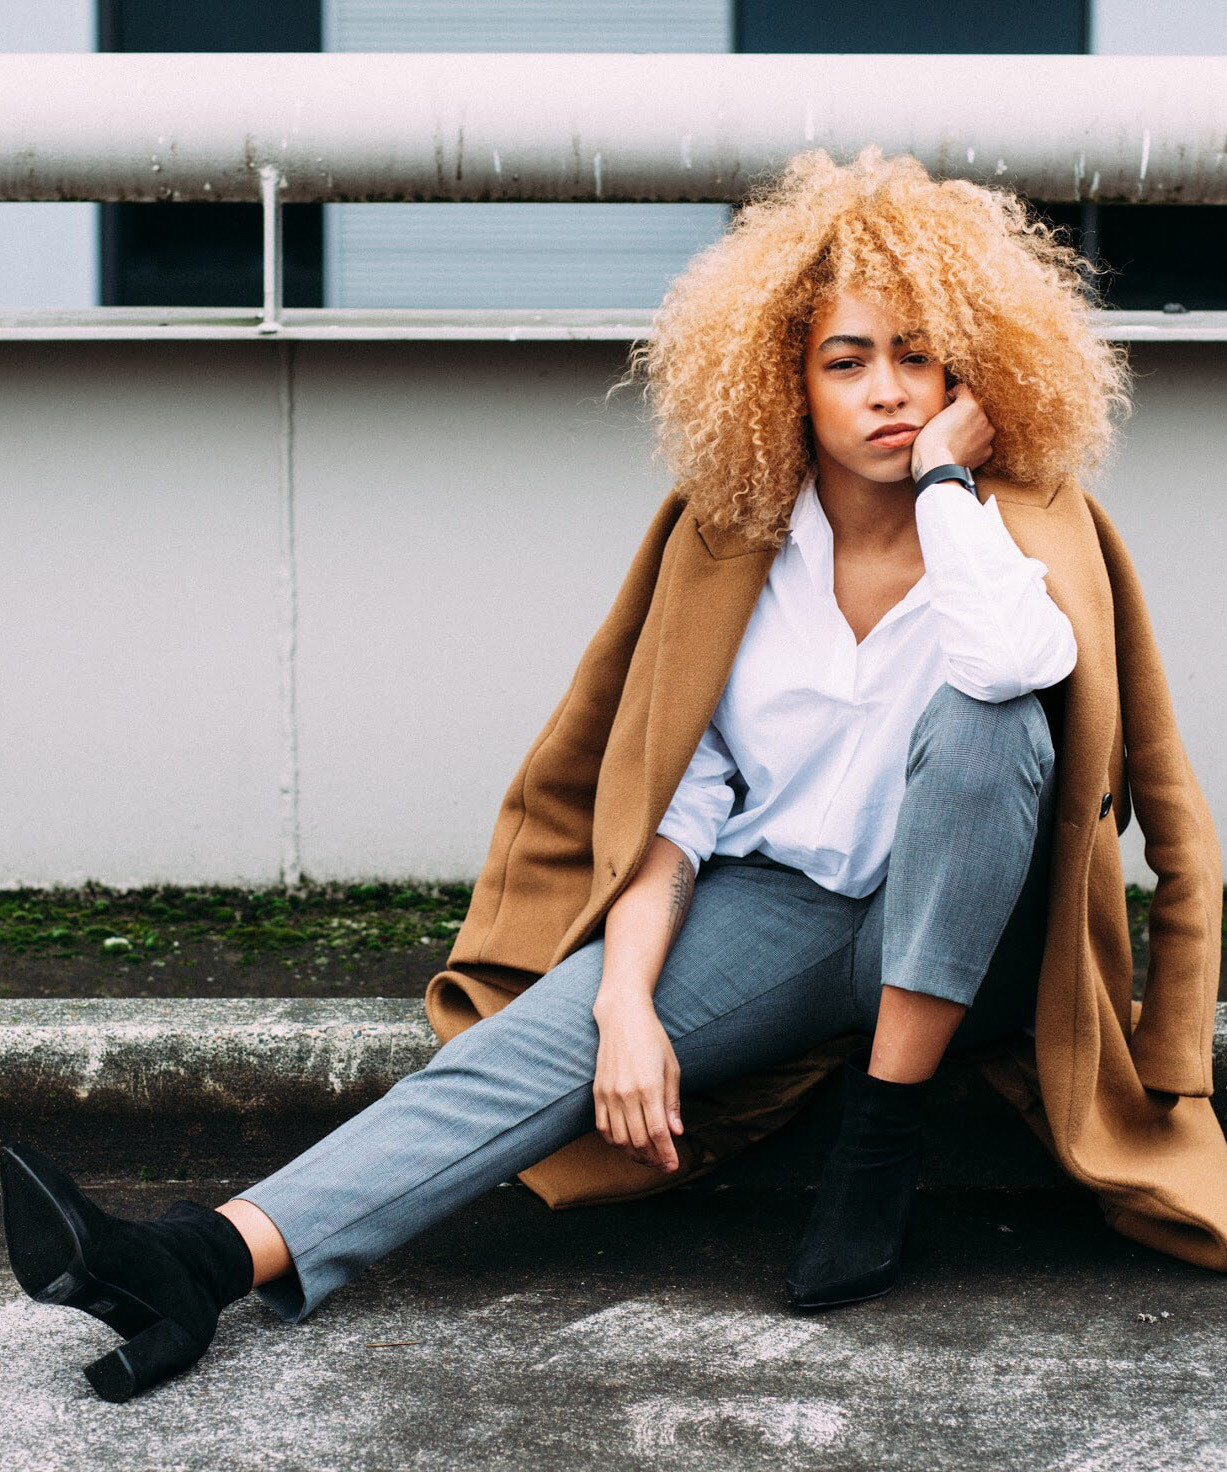 How to Bounce Back from Bleached & Damaged Curly Hair